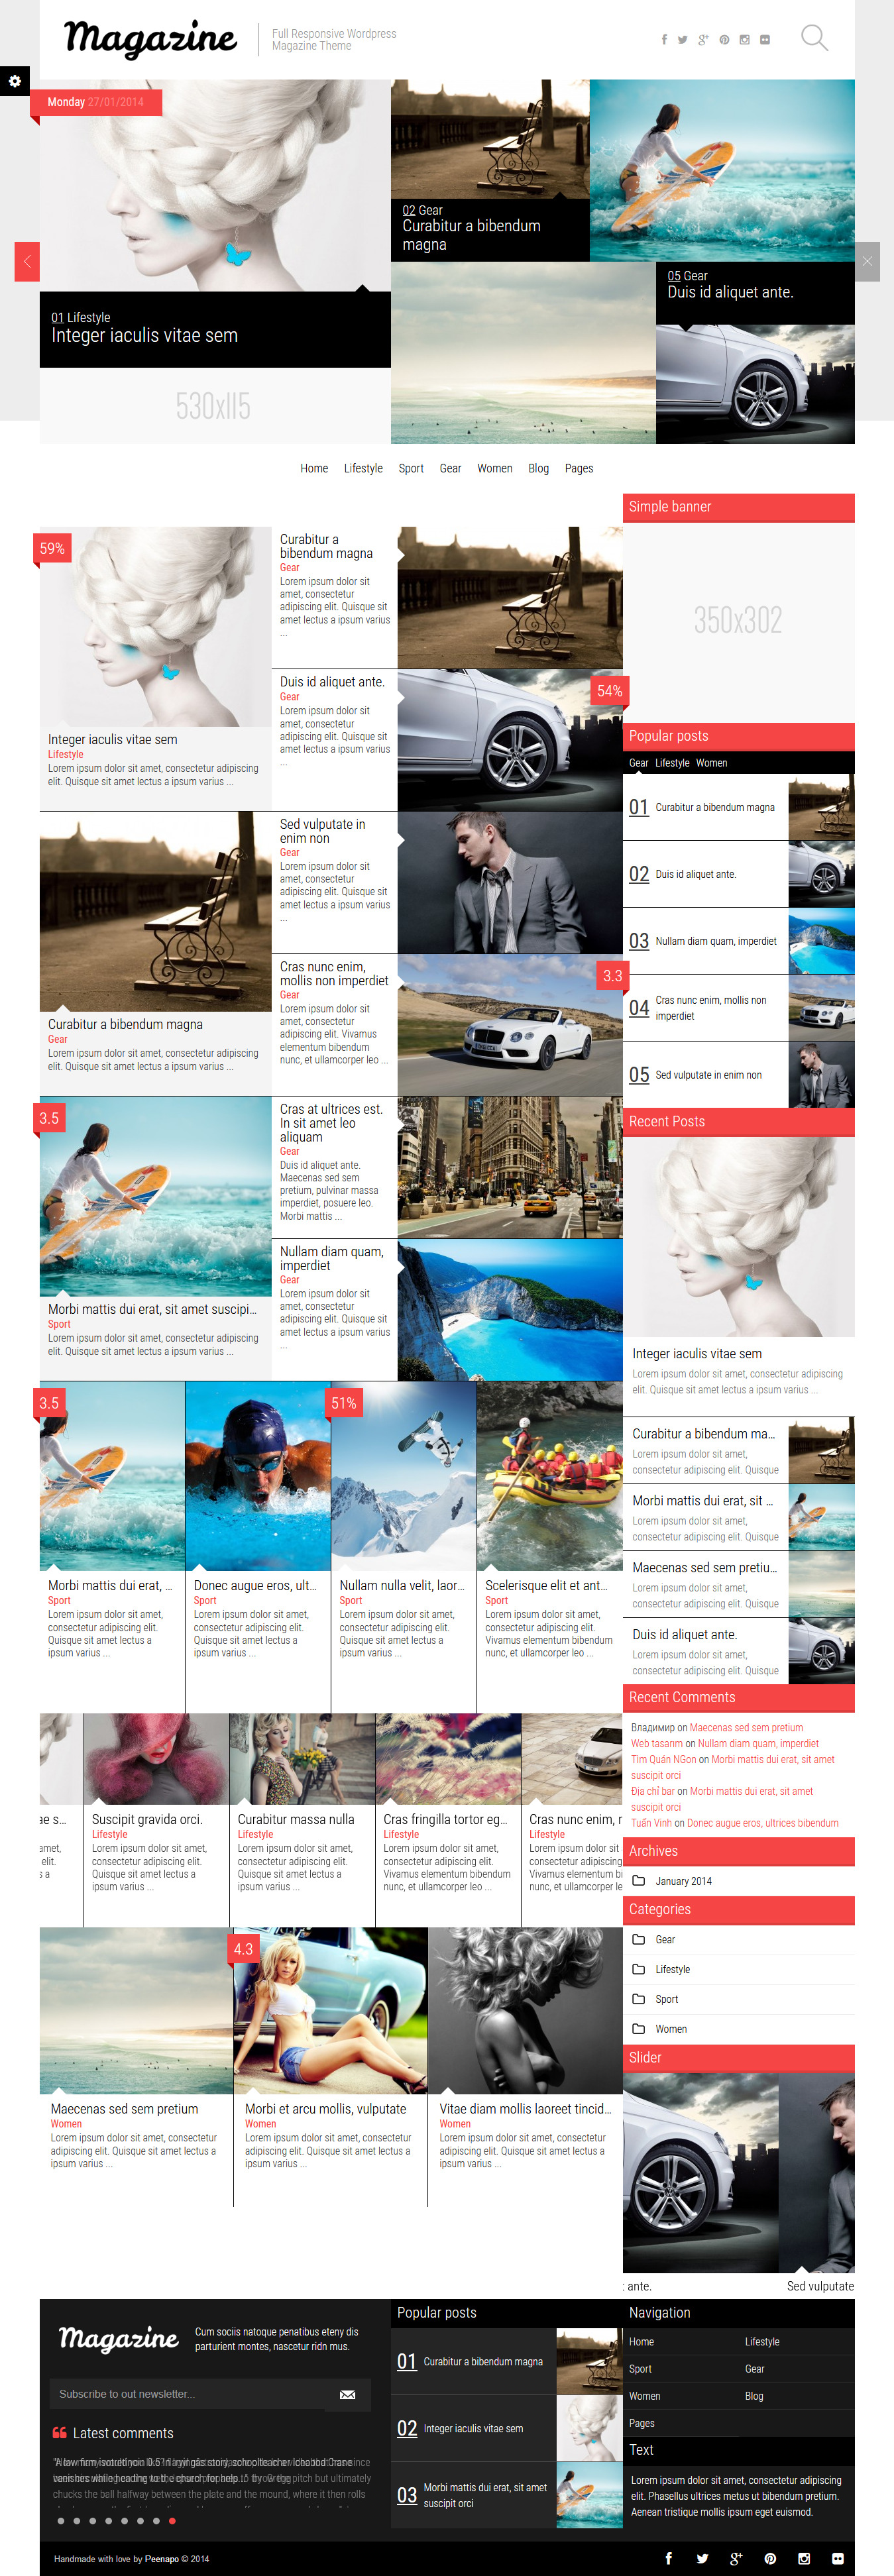 Magazine-NewsBlogReview Theme